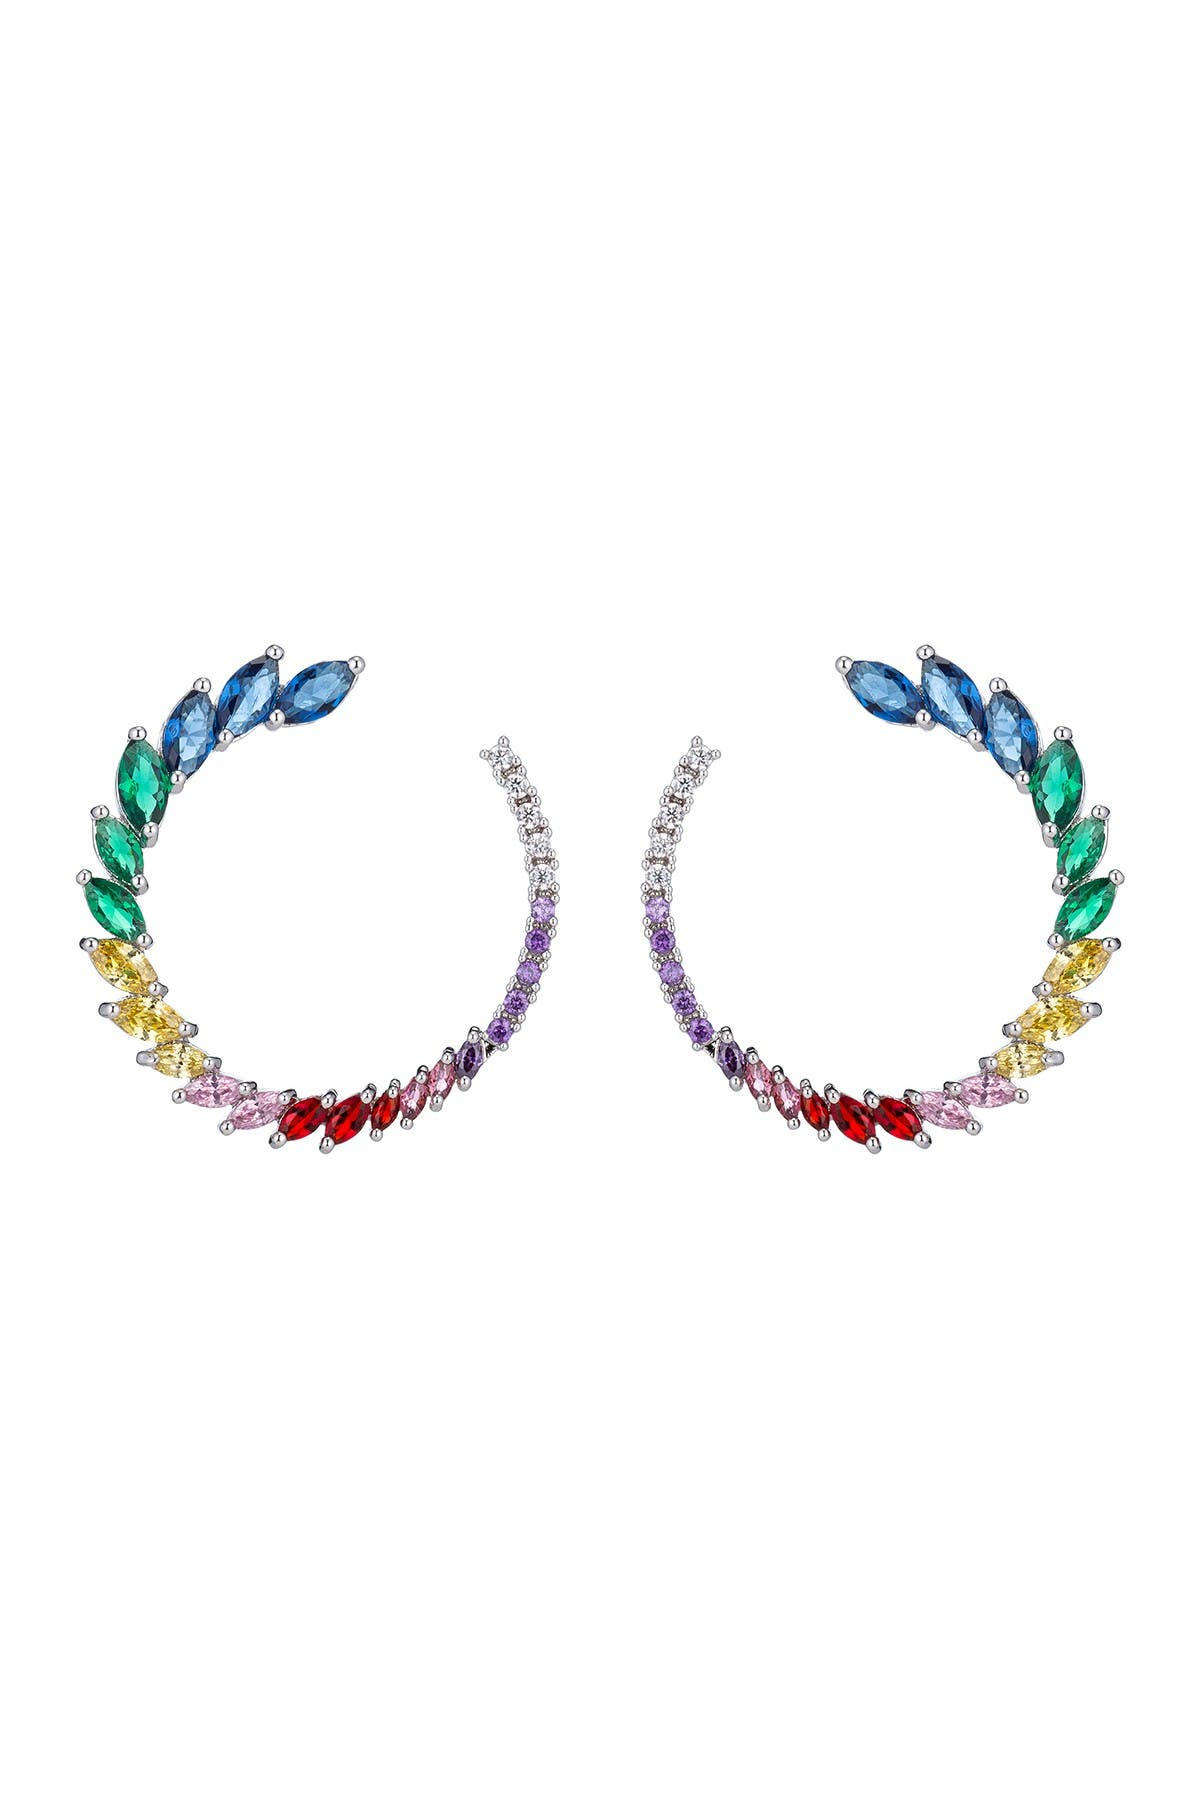 Image of Eye Candy Los Angeles Danielle Roman Marquise Cut Multi-Color Glass Open Circle Earrings